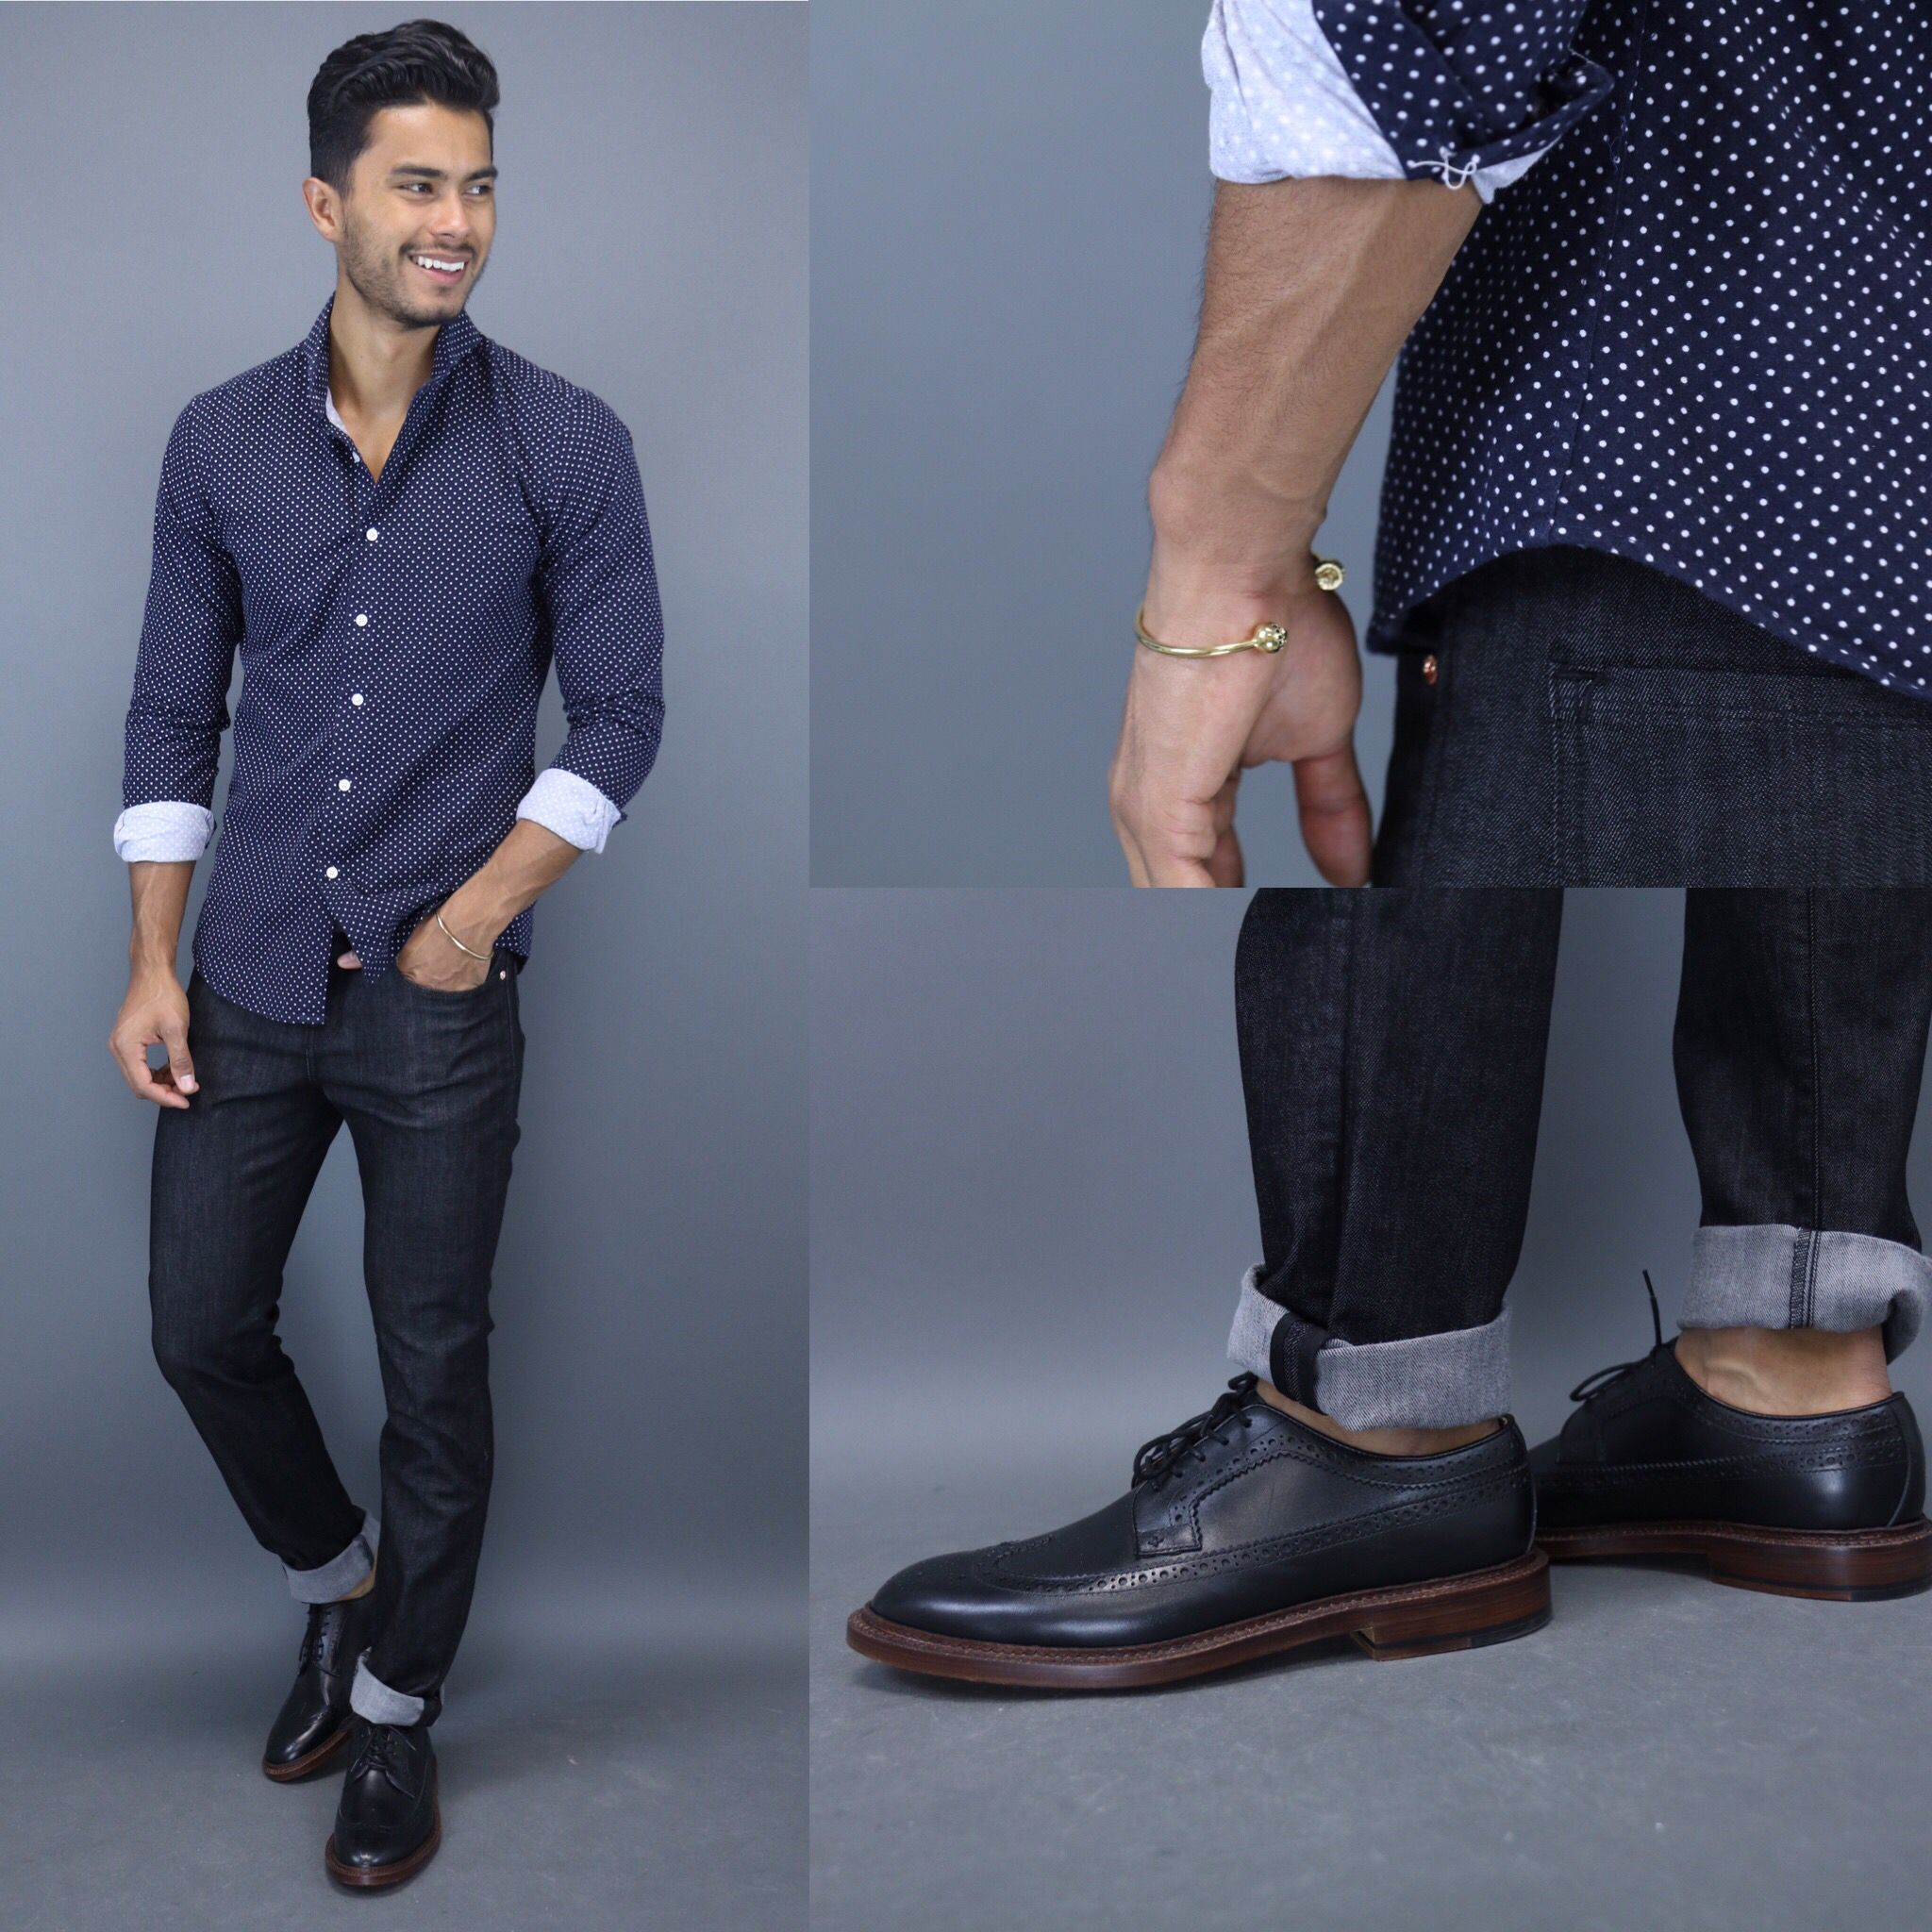 a730e33774 Check out our latest article where we discuss the 4 shades of denim every  guy needs in their wardrobe!